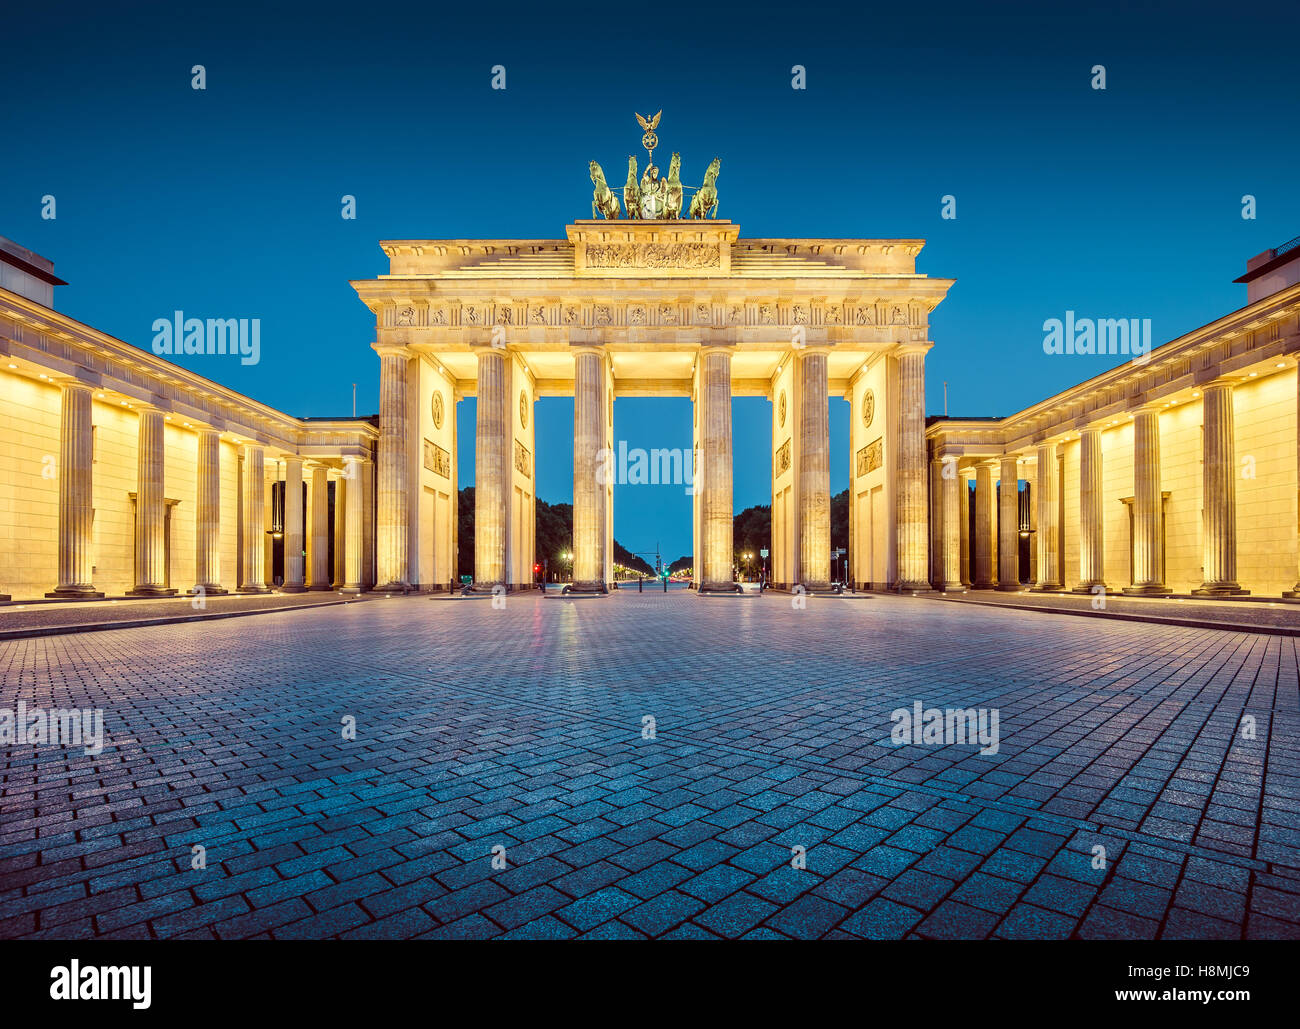 Classic view of famous Brandenburg Gate in twilight, central Berlin, Germany - Stock Image